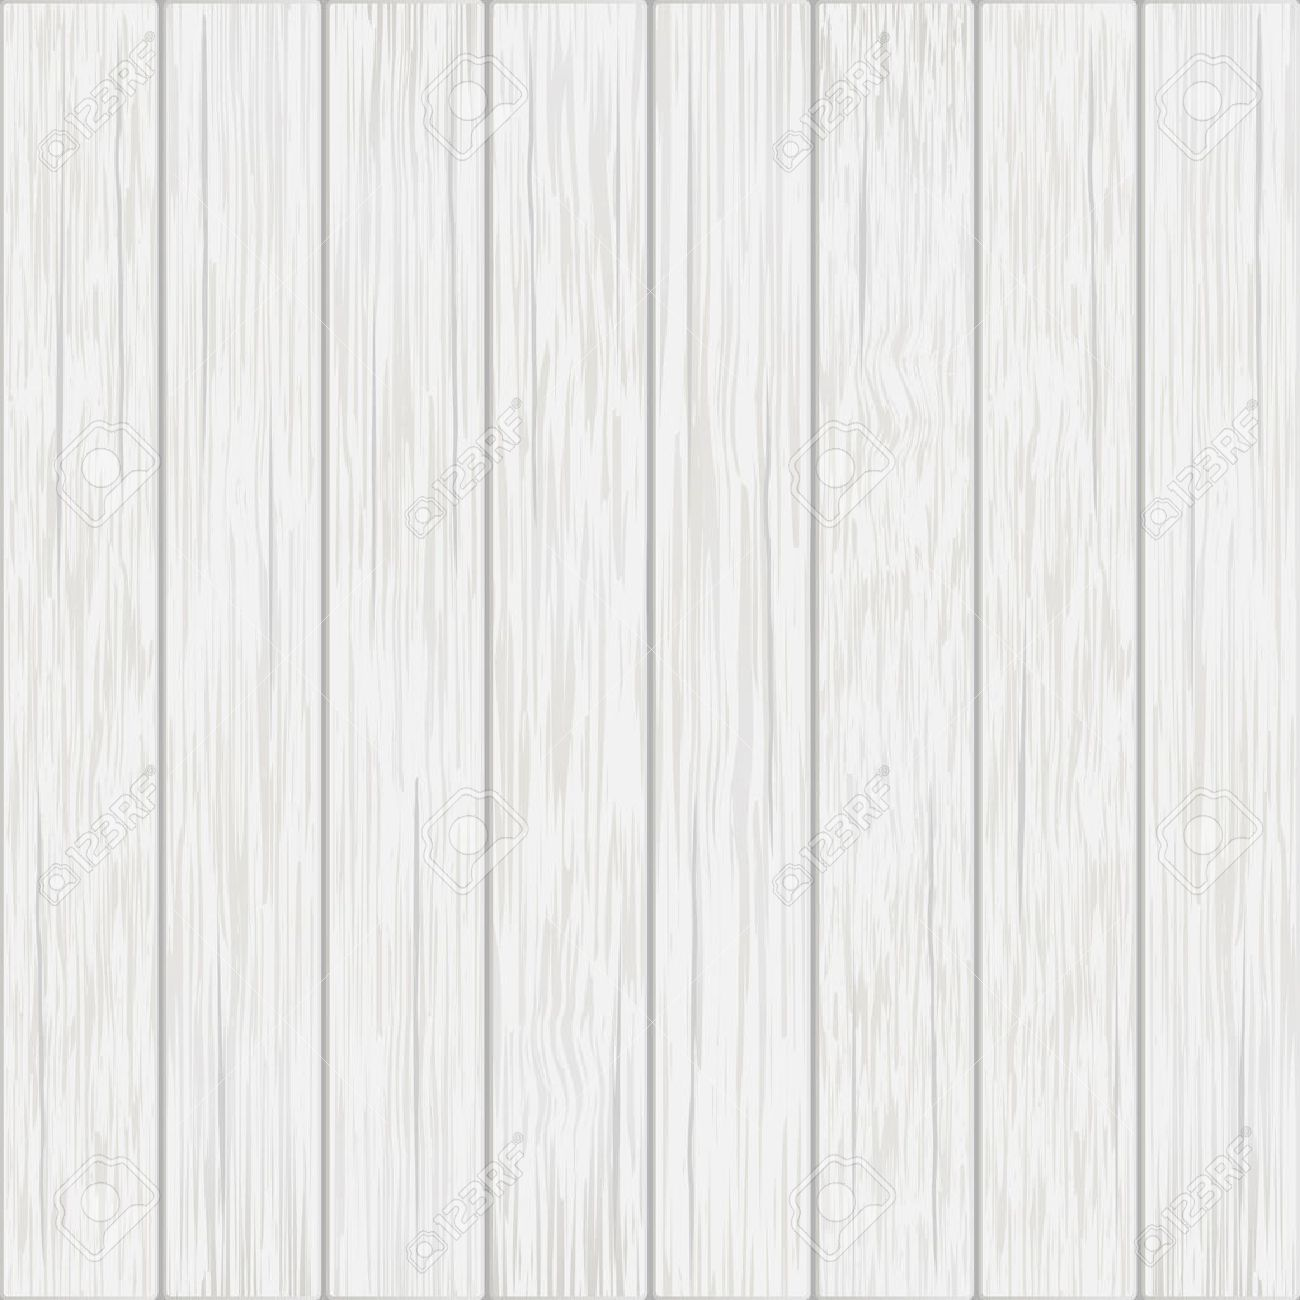 White Wood Boards   Vector Background Royalty Cliparts 1300x1300